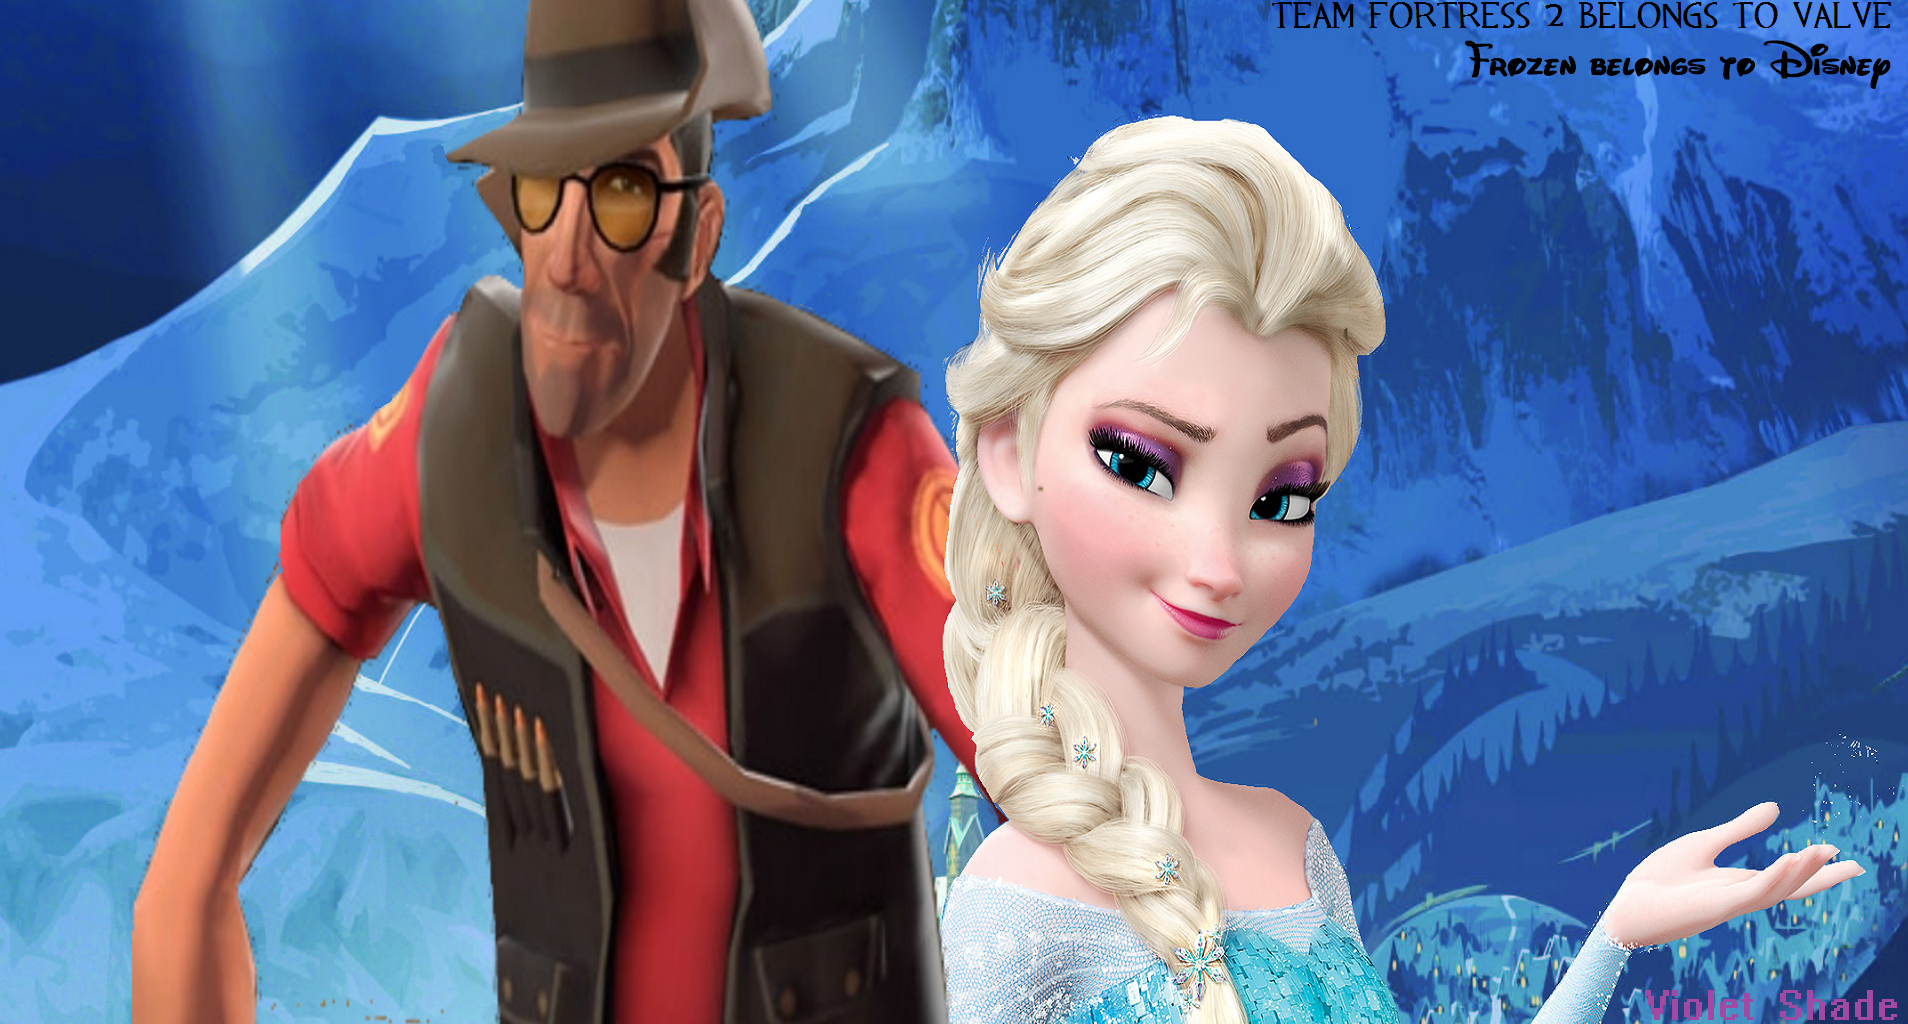 The Professional Assassin and The Snow Queen